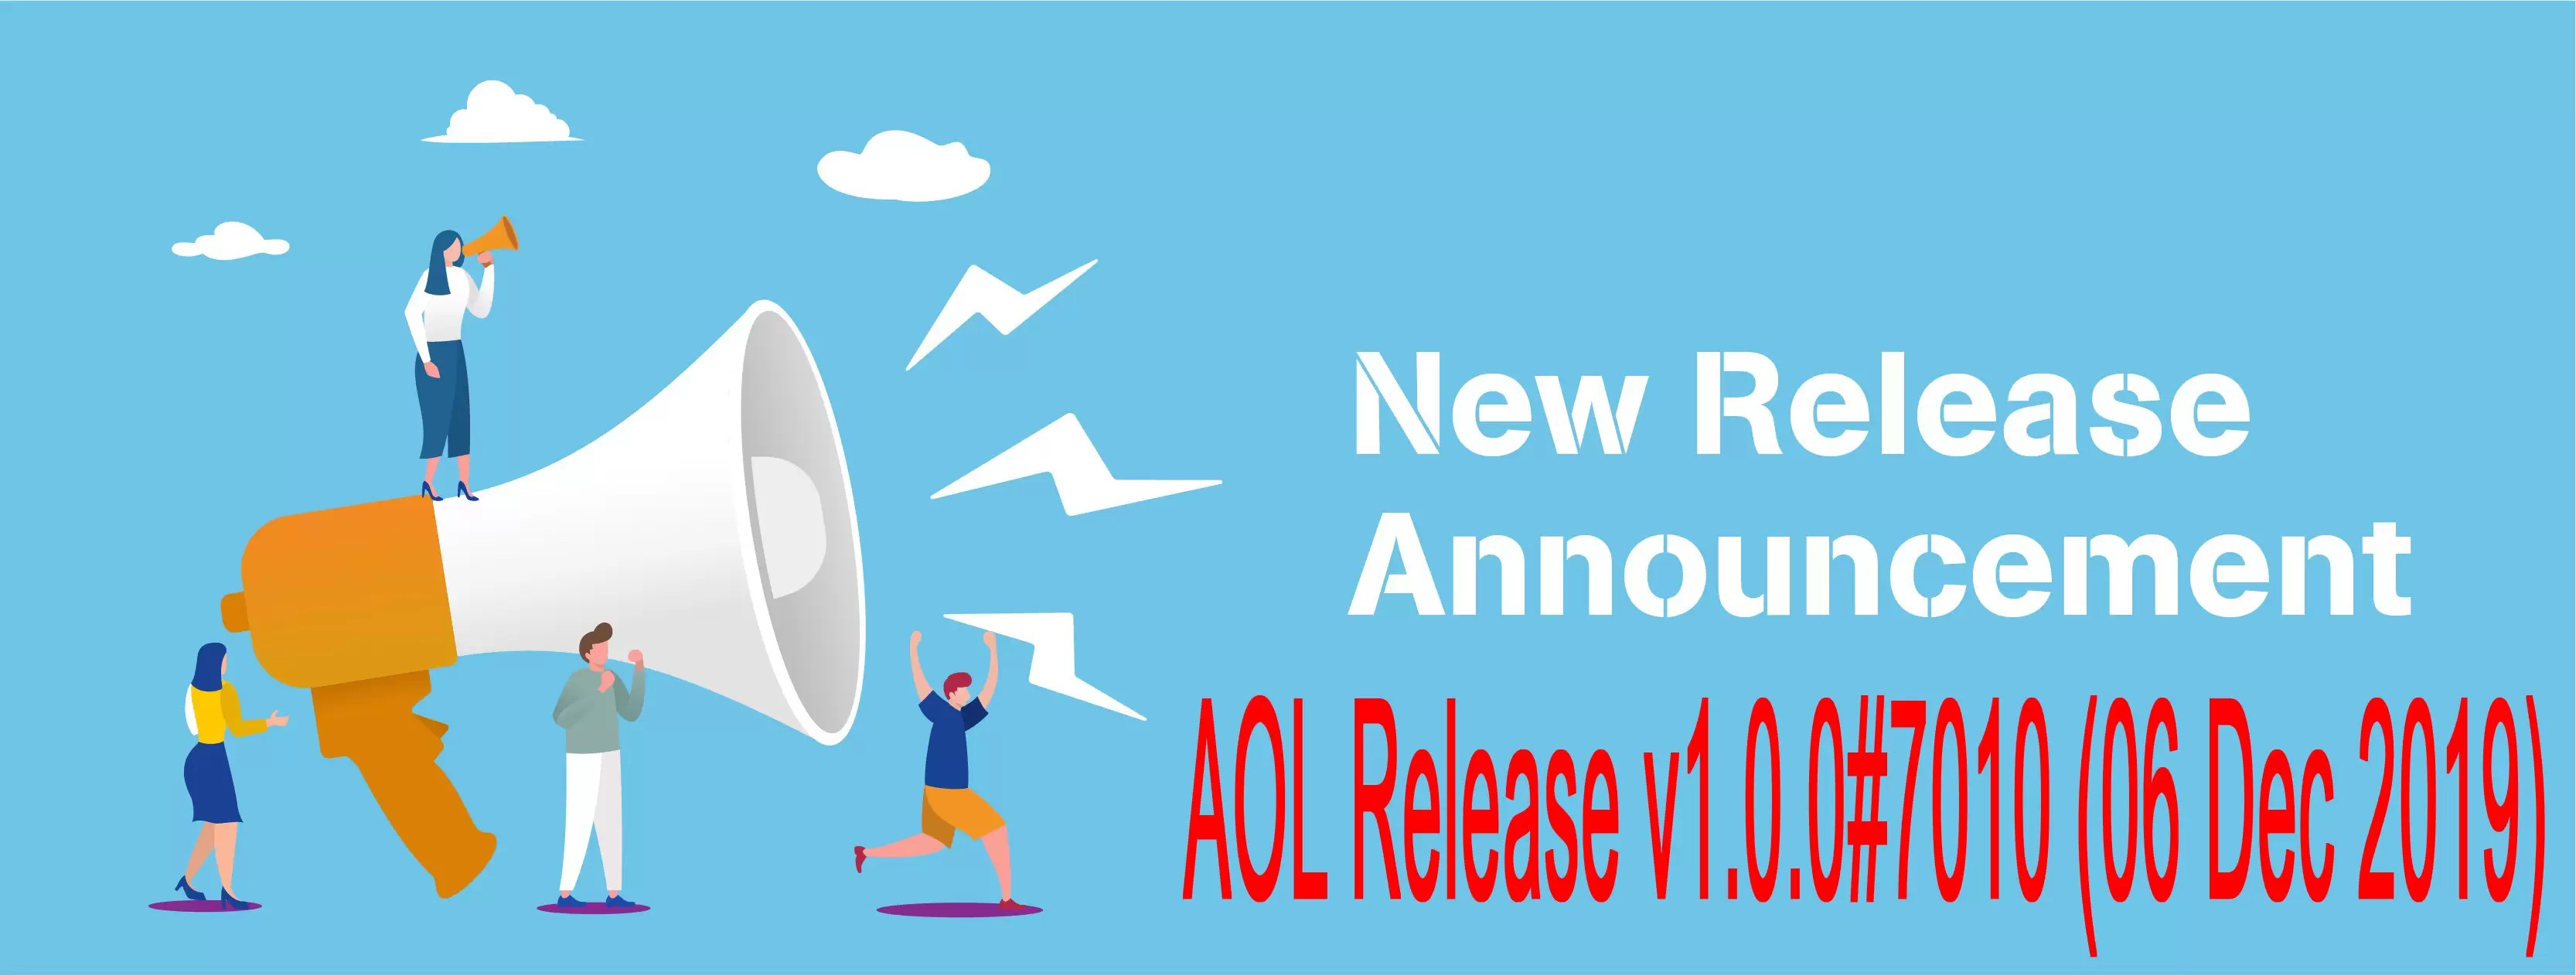 Accurate Online Release v1.0.0#7010 (06 Dec 2019)